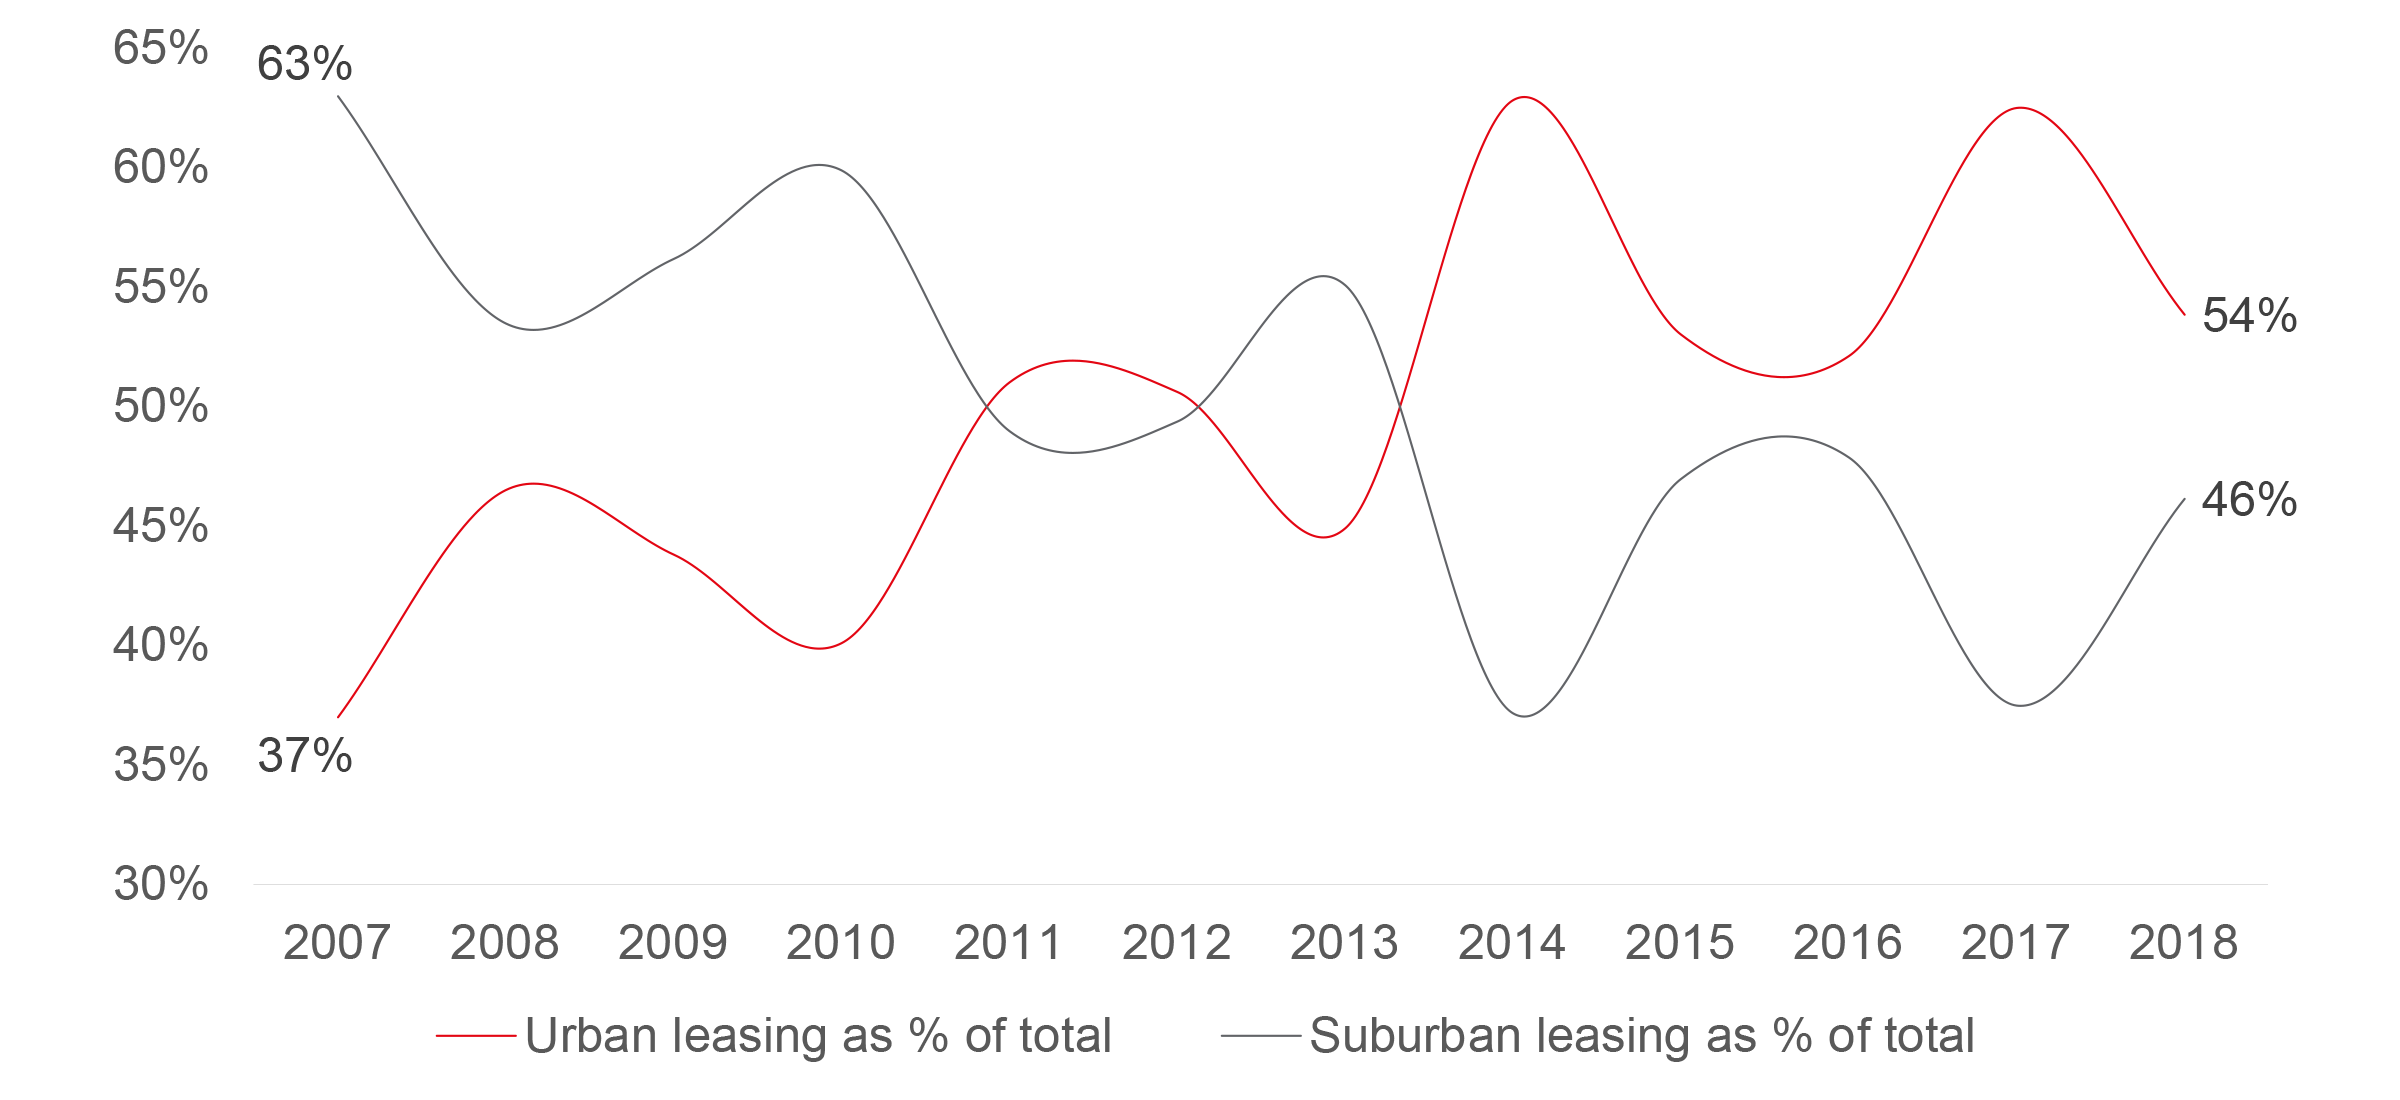 Despite softer year, office leasing in Portland's urban core still leads the suburbs